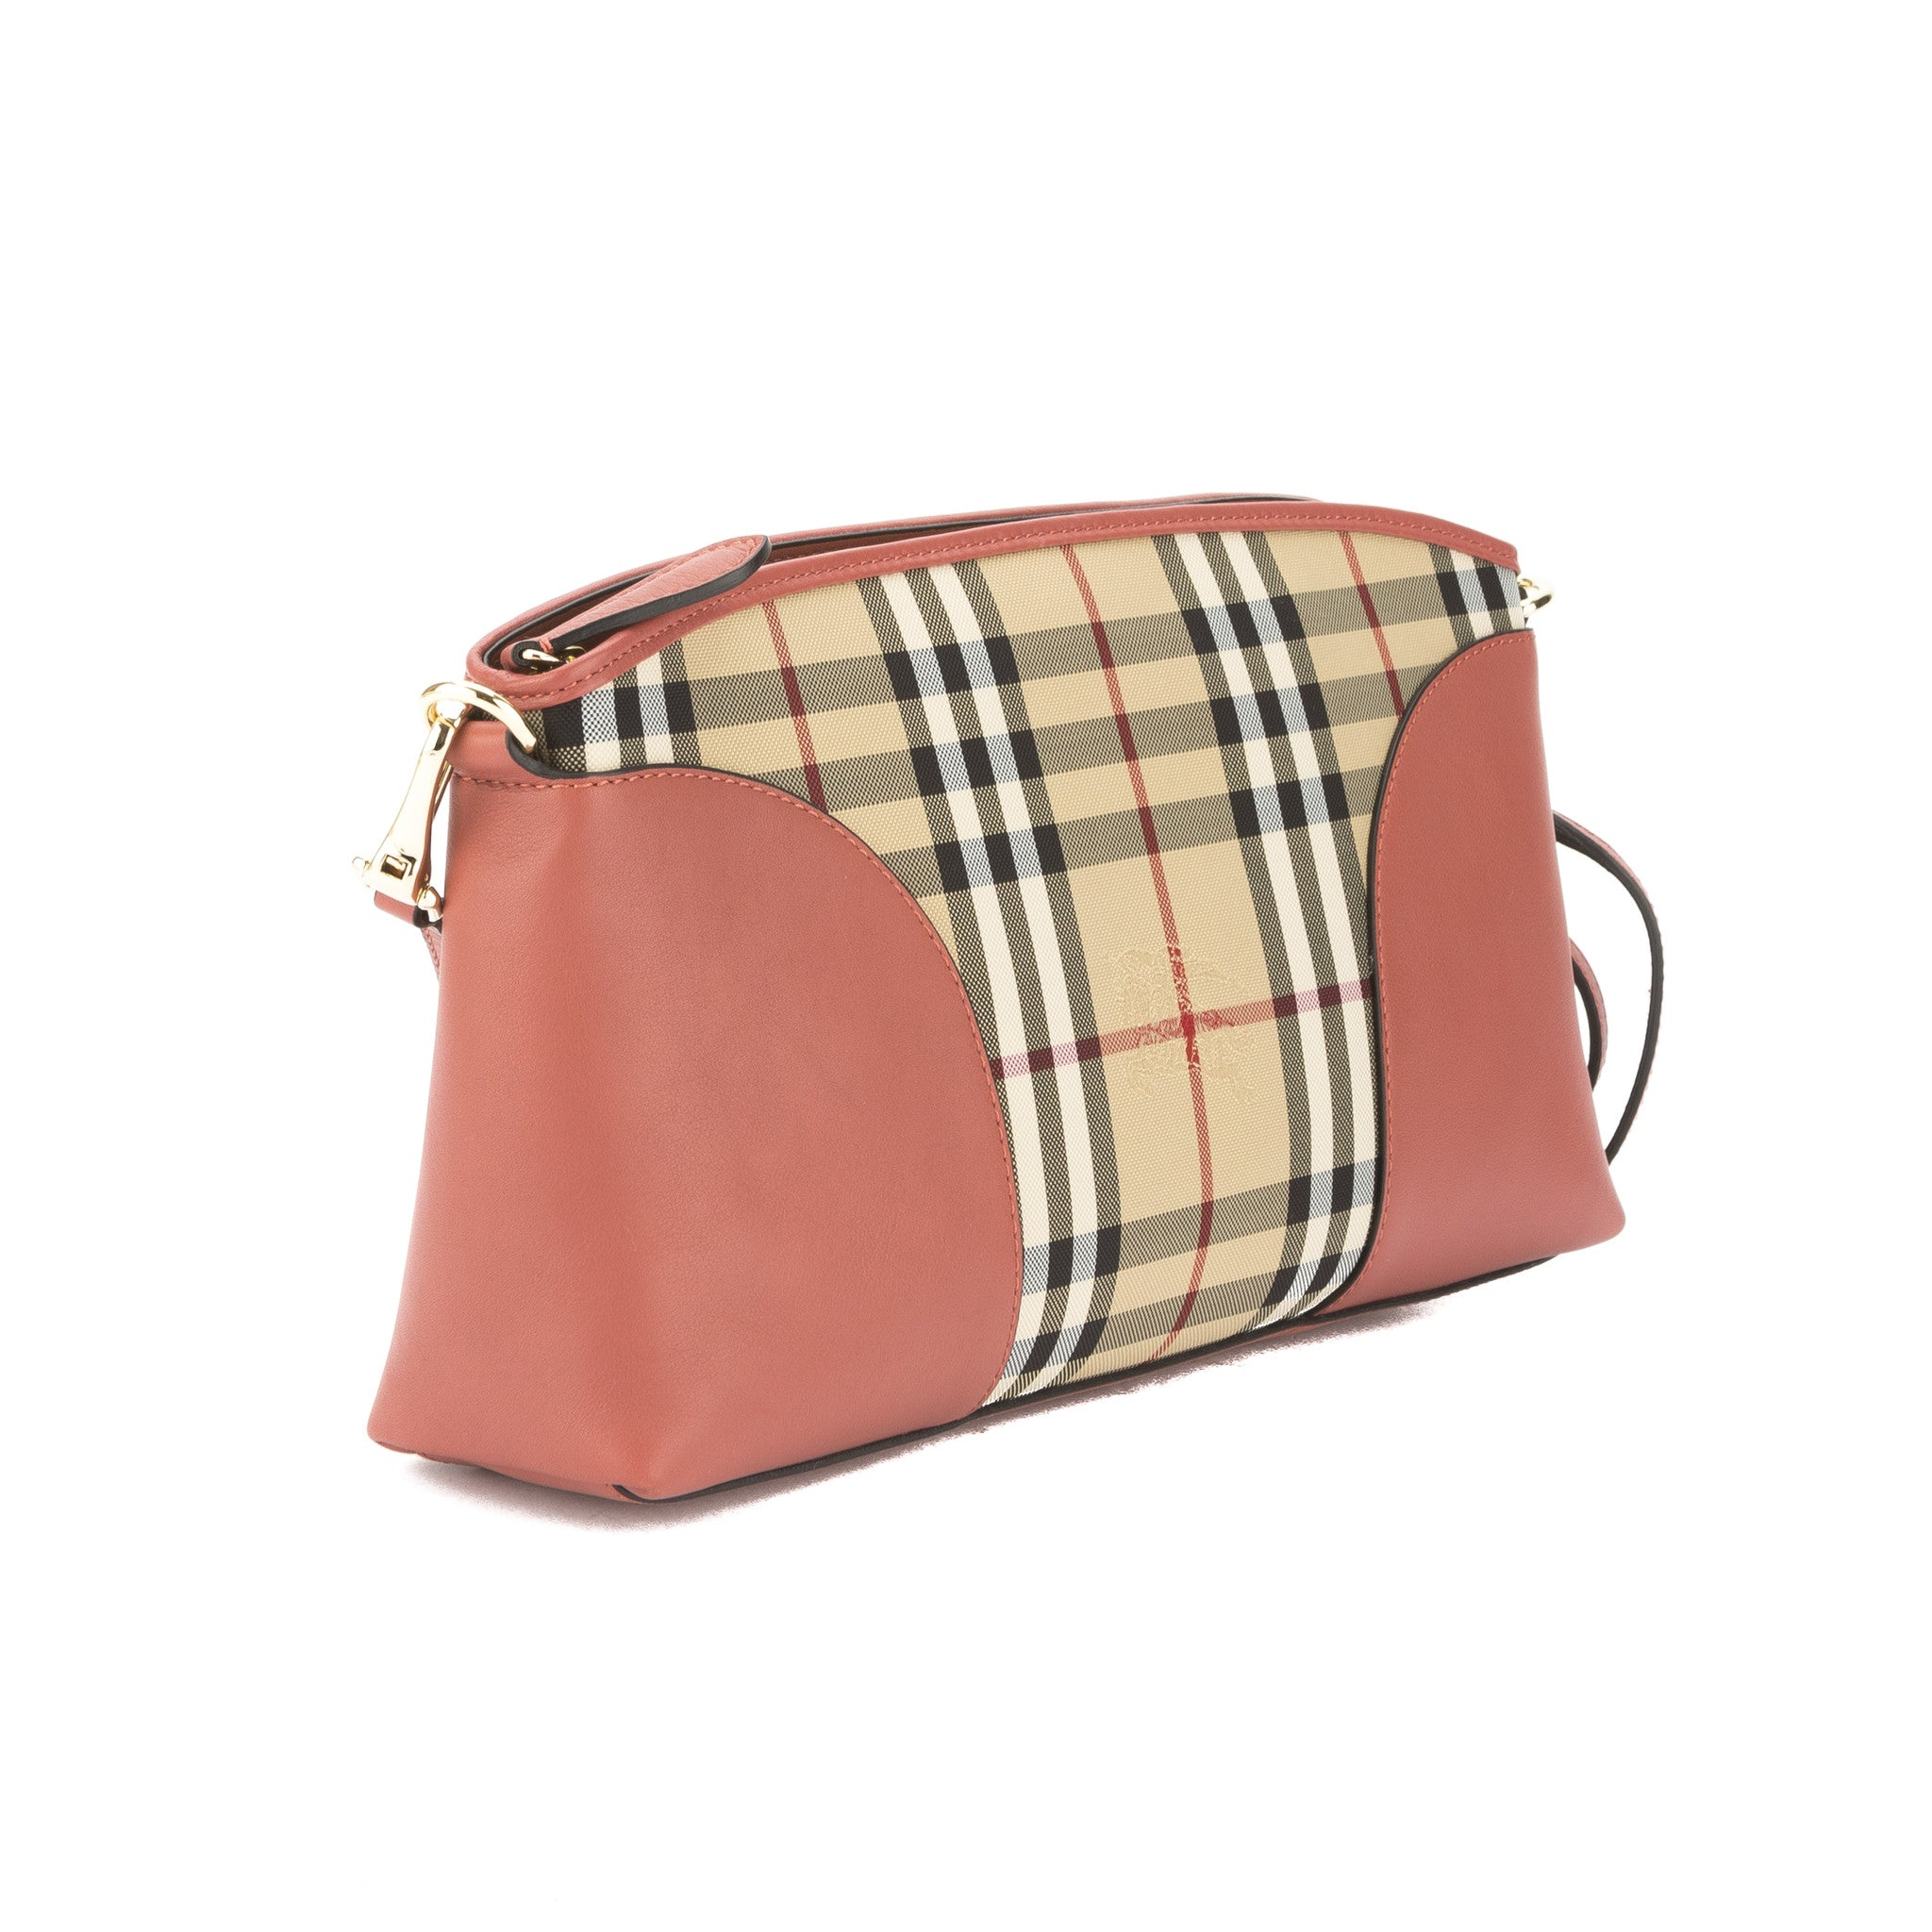 f31212314bc8 Burberry Pale Orchid Leather and Horseferry Check Clutch Bag (New with -  3129023